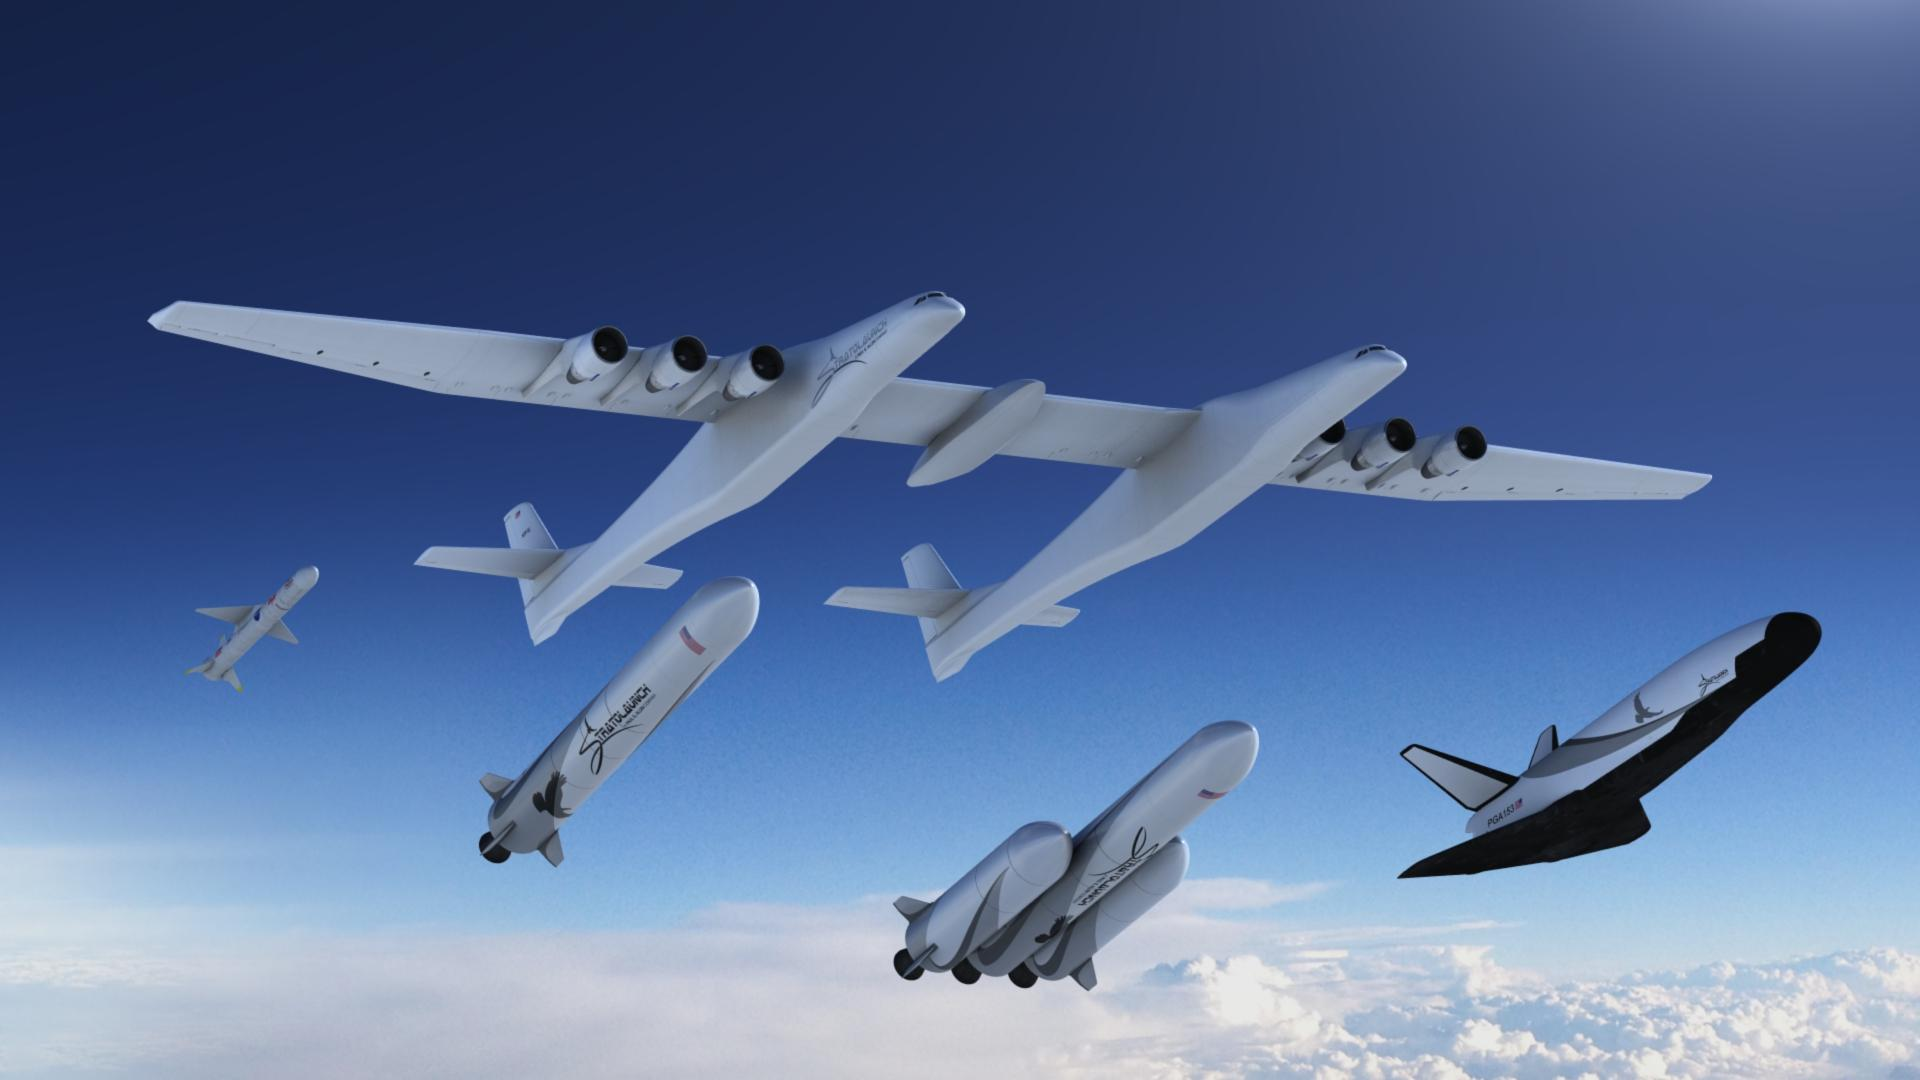 In Pictures: Stratolaunch PGA Rocket Engine Revealed | Aviation Week Network